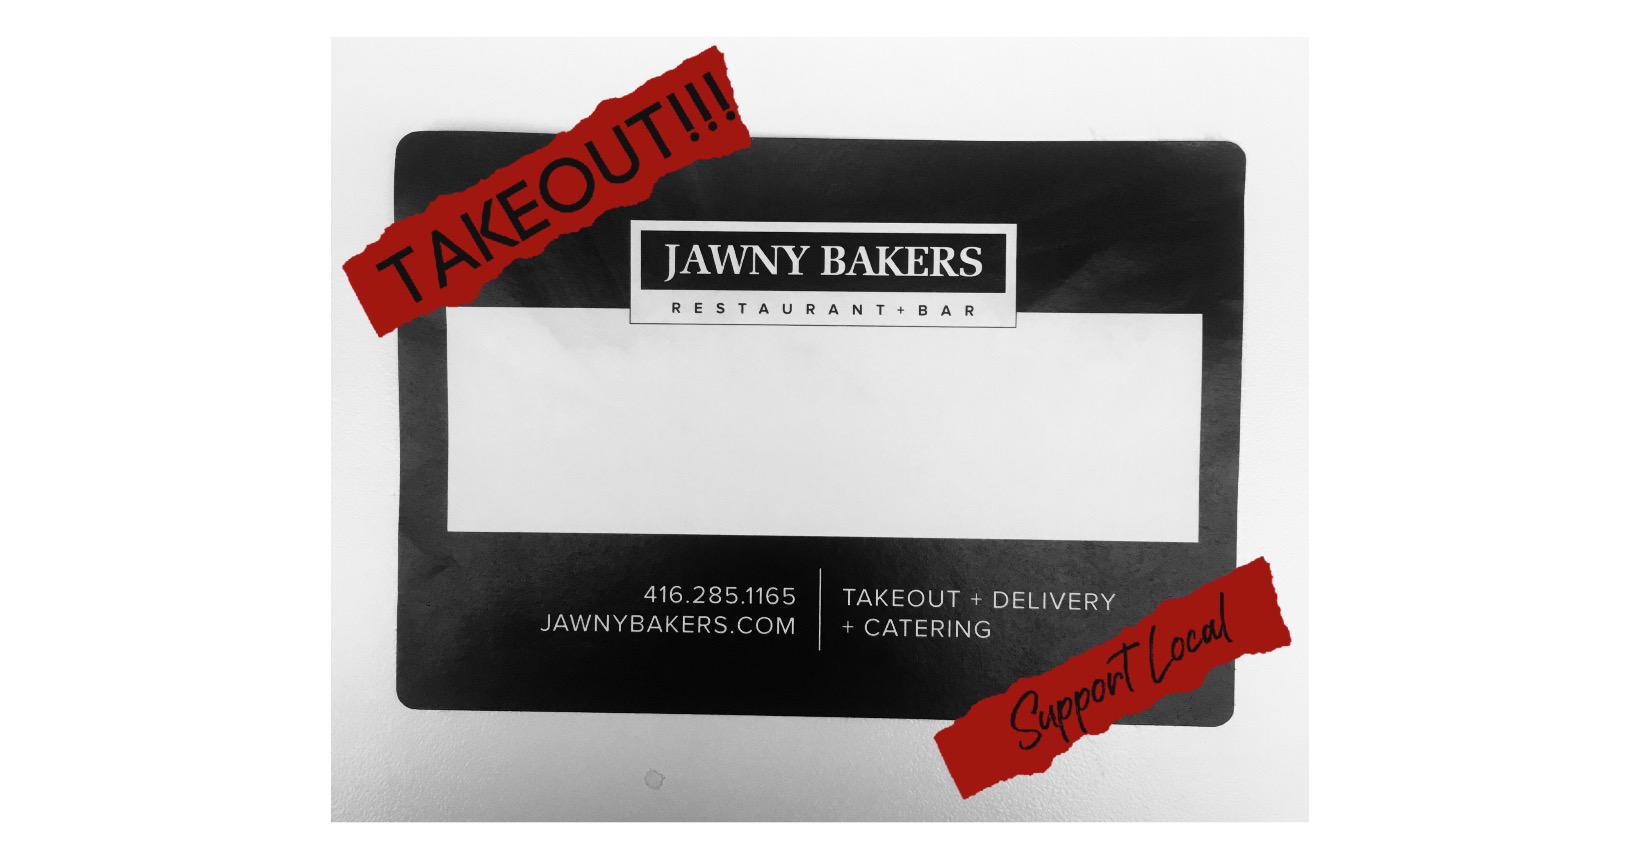 Staying Occupied: Takeout - Support Local - Jawny Baker | www.sproutingbalance.com | #stayhome #socialdistancing #bepositive